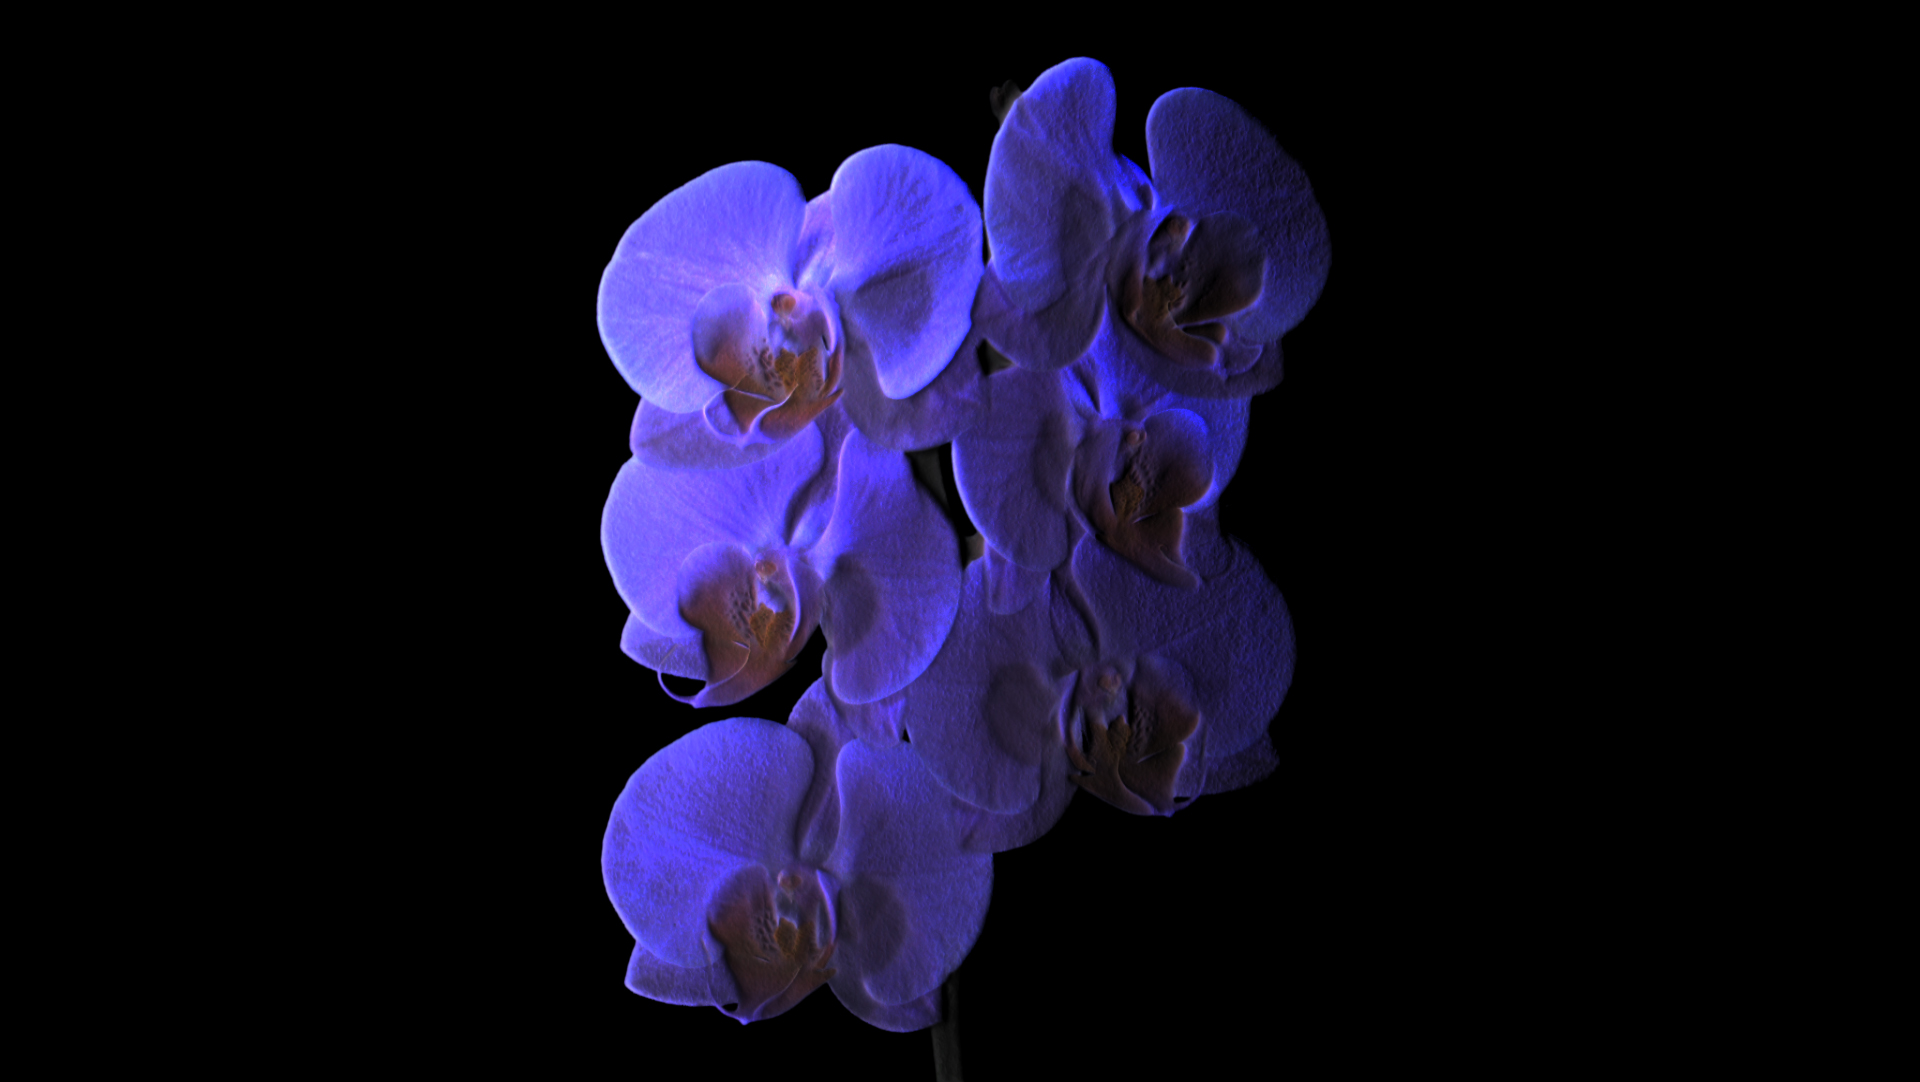 Orchids growing slow_01 (0-00-01-16).jpg